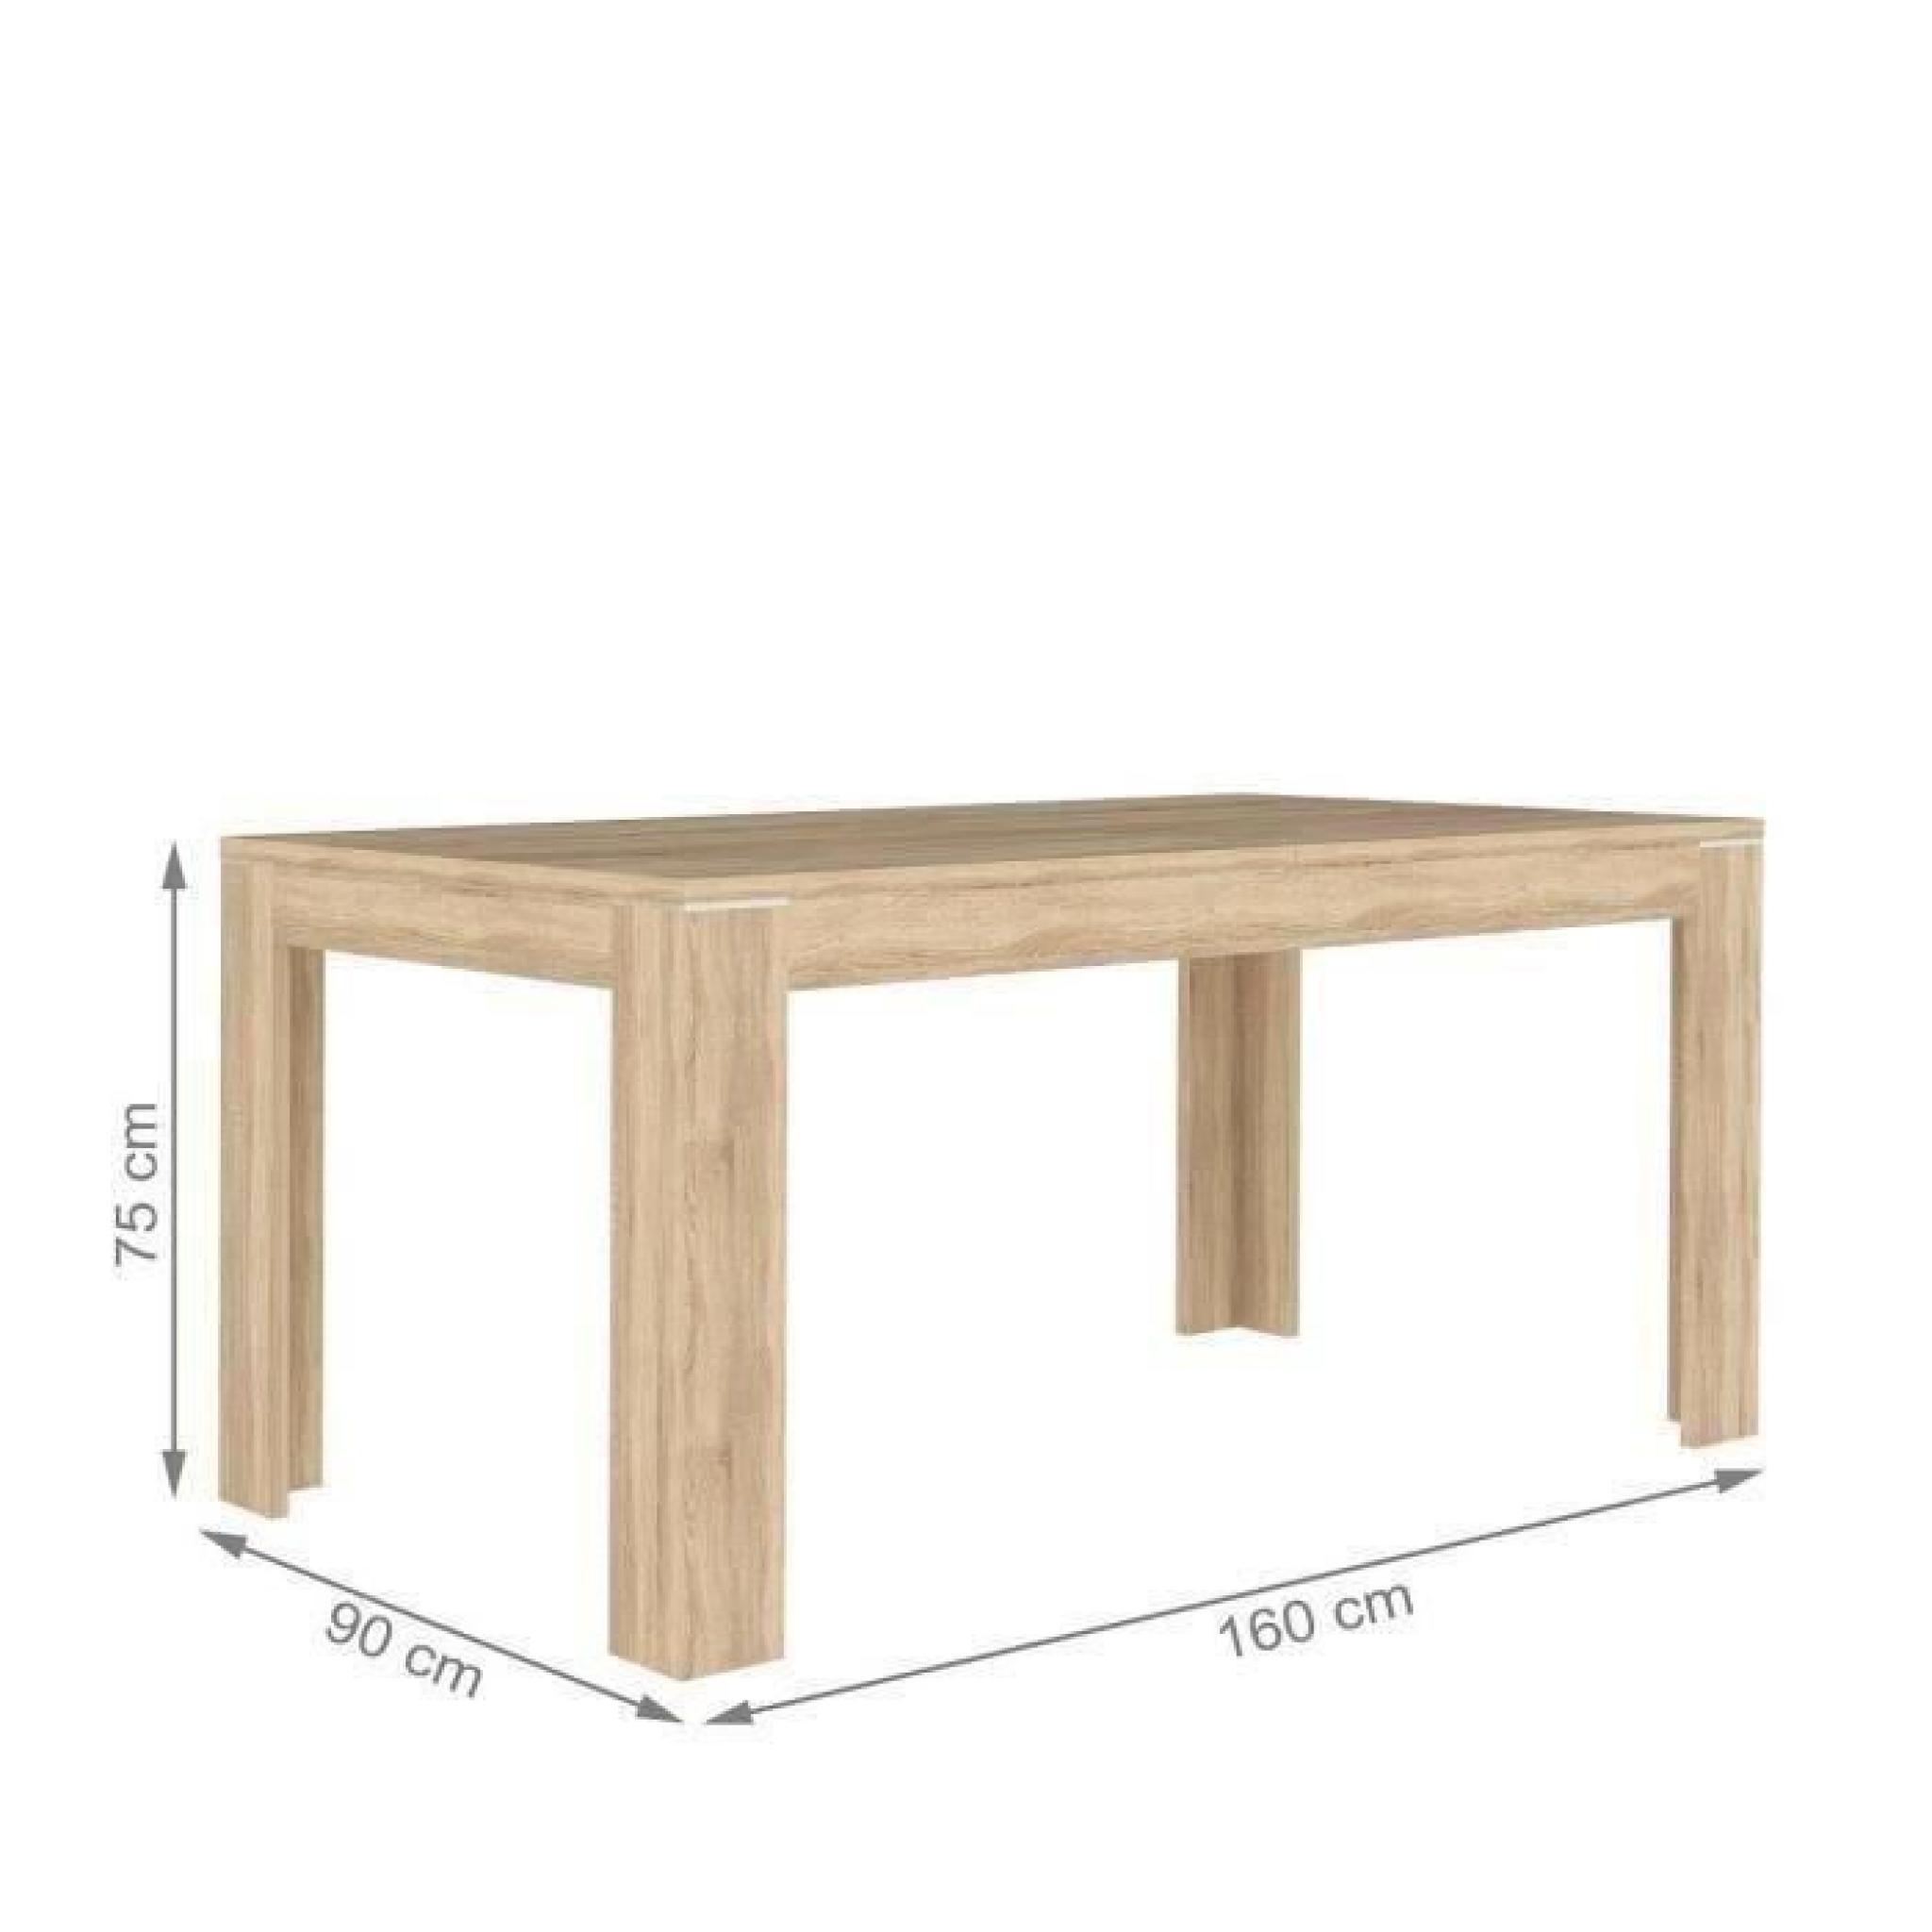 Table salle a manger extensible pas cher maison design for Table extensible 160